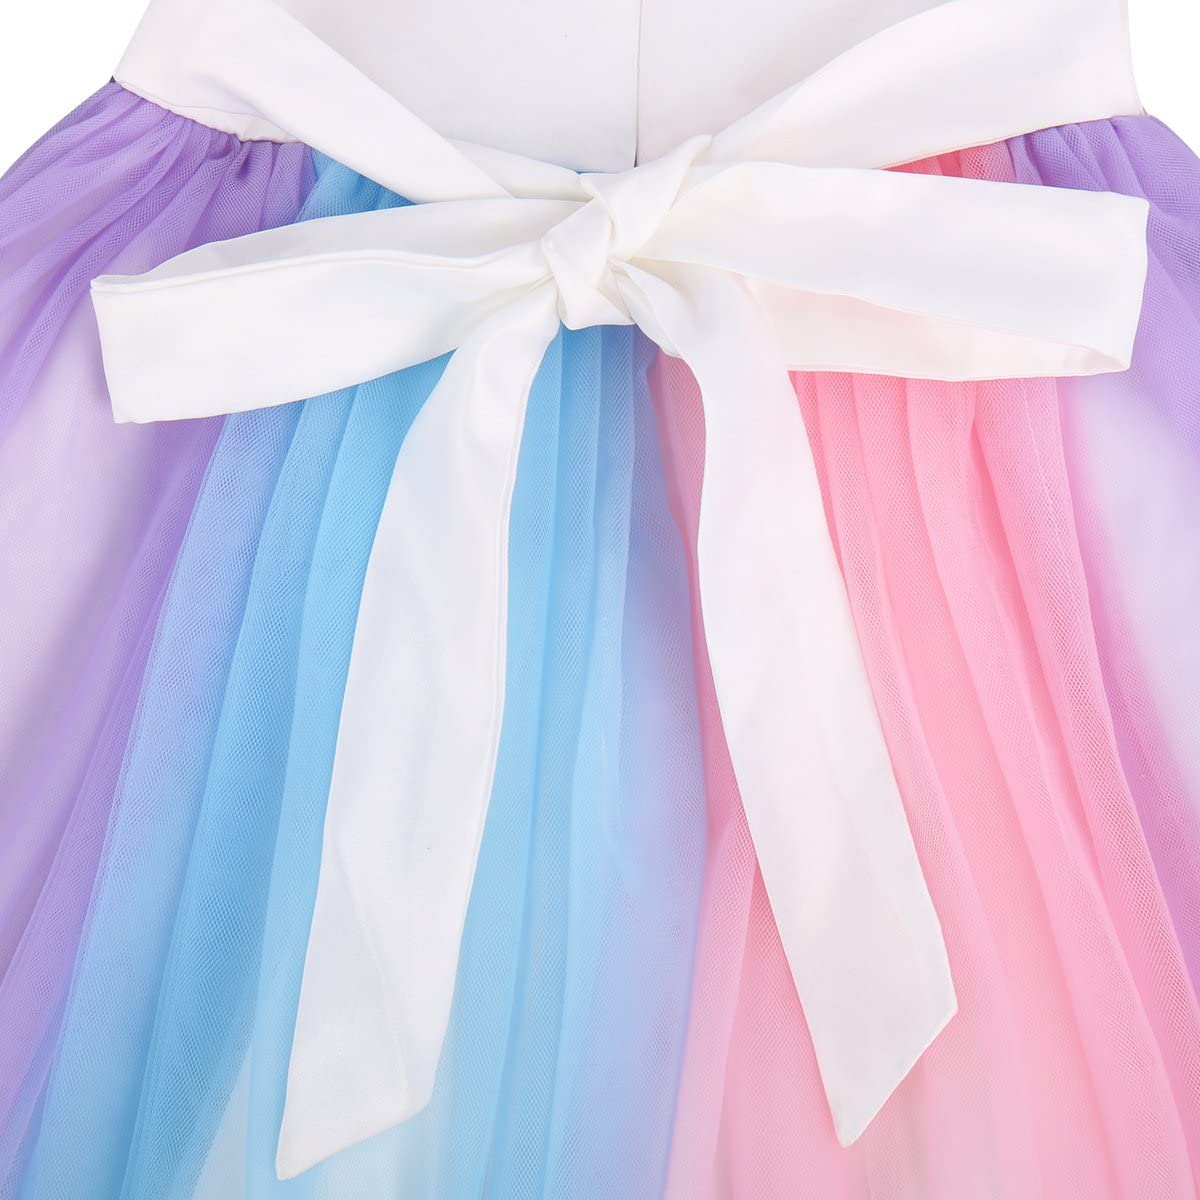 OBEEII Kids Unicorn Rainbow Dress Cosplay Party Costume Fairy Fancy Dress Princess Tutu Skirt for Birthday Carnival Hallowee 1-7 Years